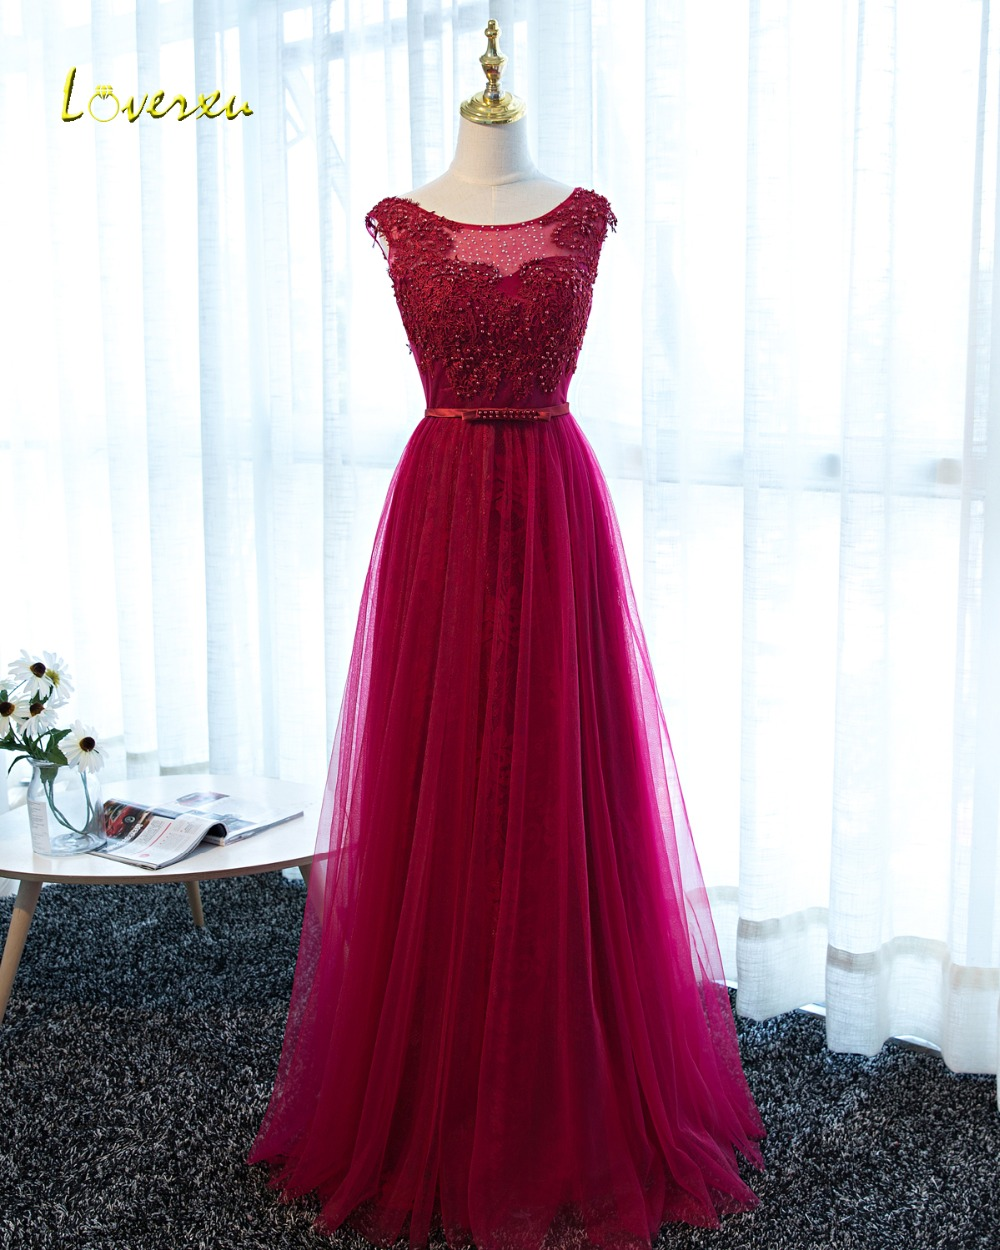 Loverxu Romantic Scoop Neck Beaded Burgundy Evening Dress 2019 Appliques Cap Sleeve Lace A-Line Formal Party Gown Robe De Soiree